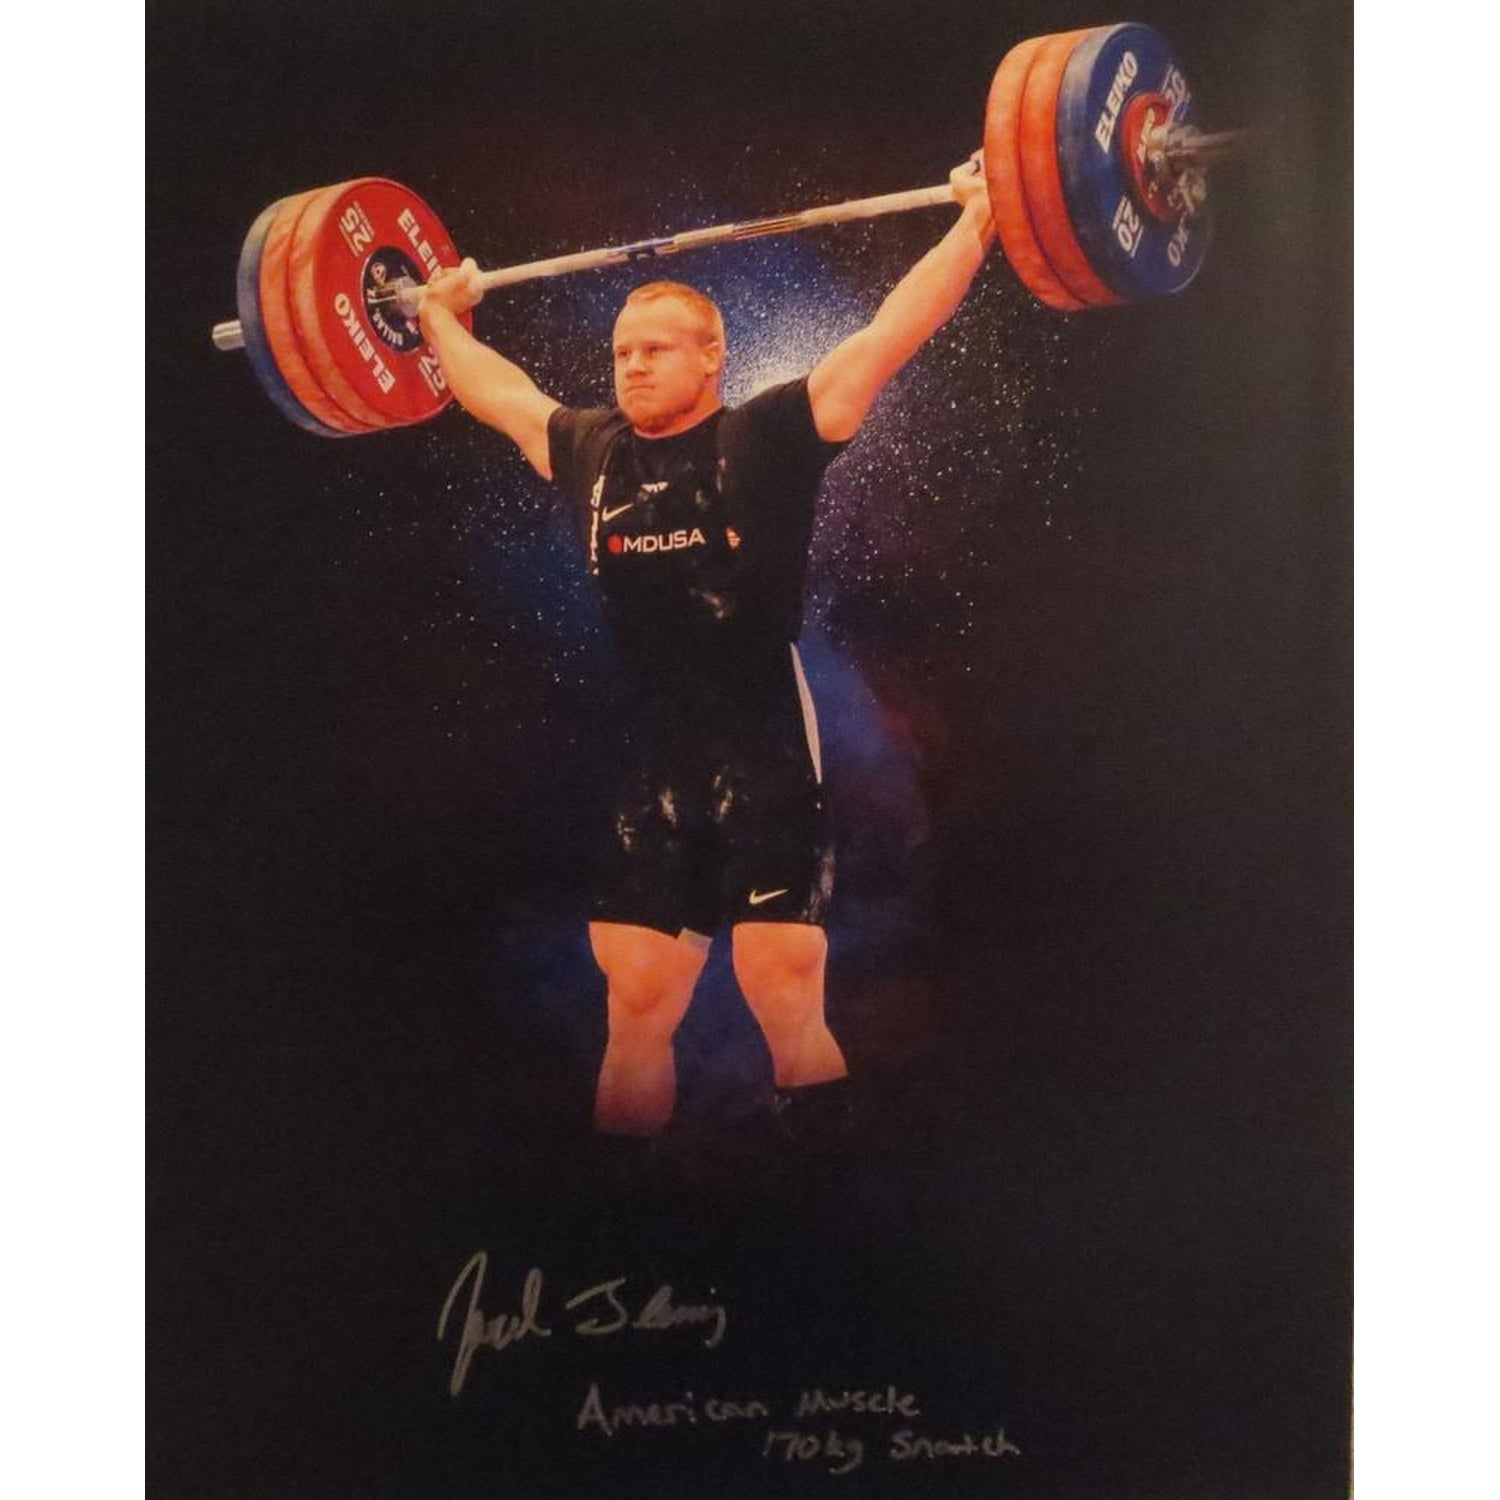 Jared Fleming Autographed USA Weightlifting American Record 170 Snatch Signed 16x20 Photo 1-Powers Sports Memorabilia